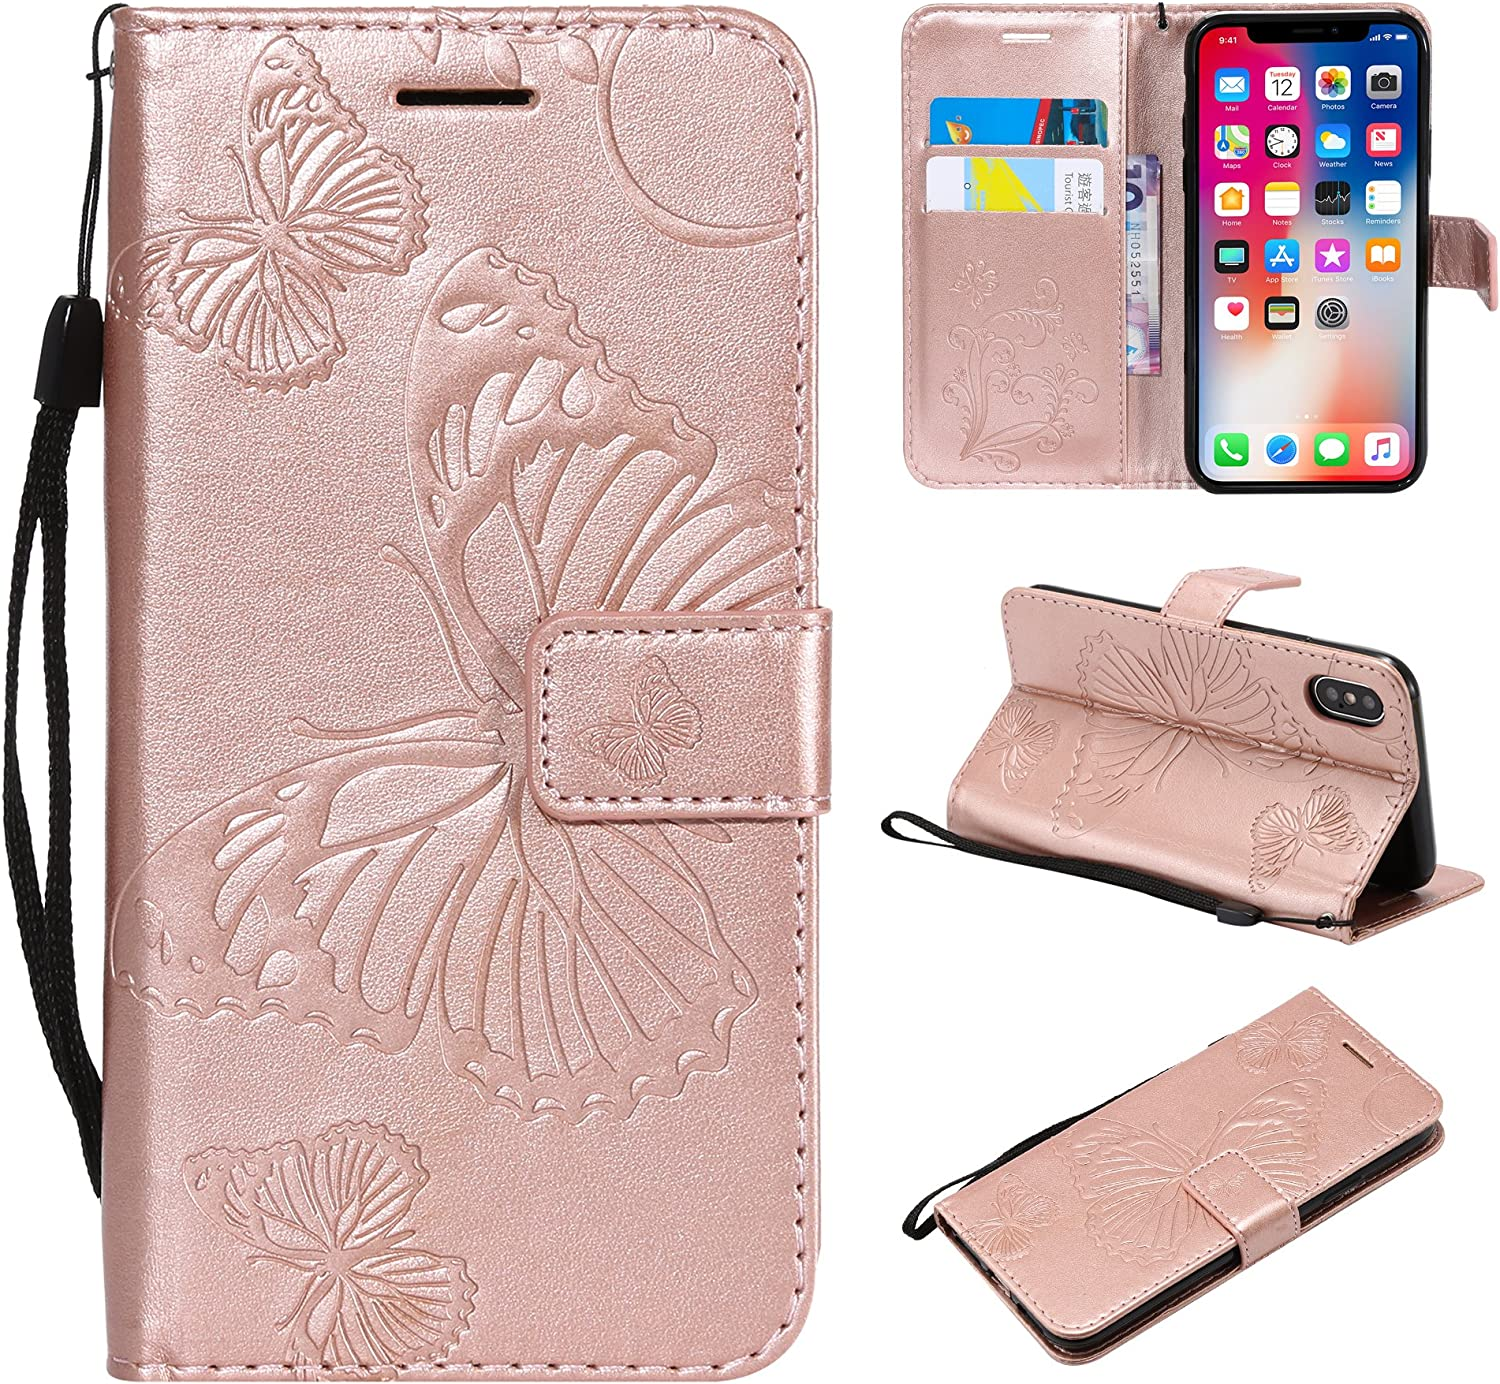 Jaune Cuir PU en Relief Motif Papillon Portefeuille Support Flip Coque Coque pour iPhone 8/ Plus Eazyhurry iPhone 7/ Plus Coque